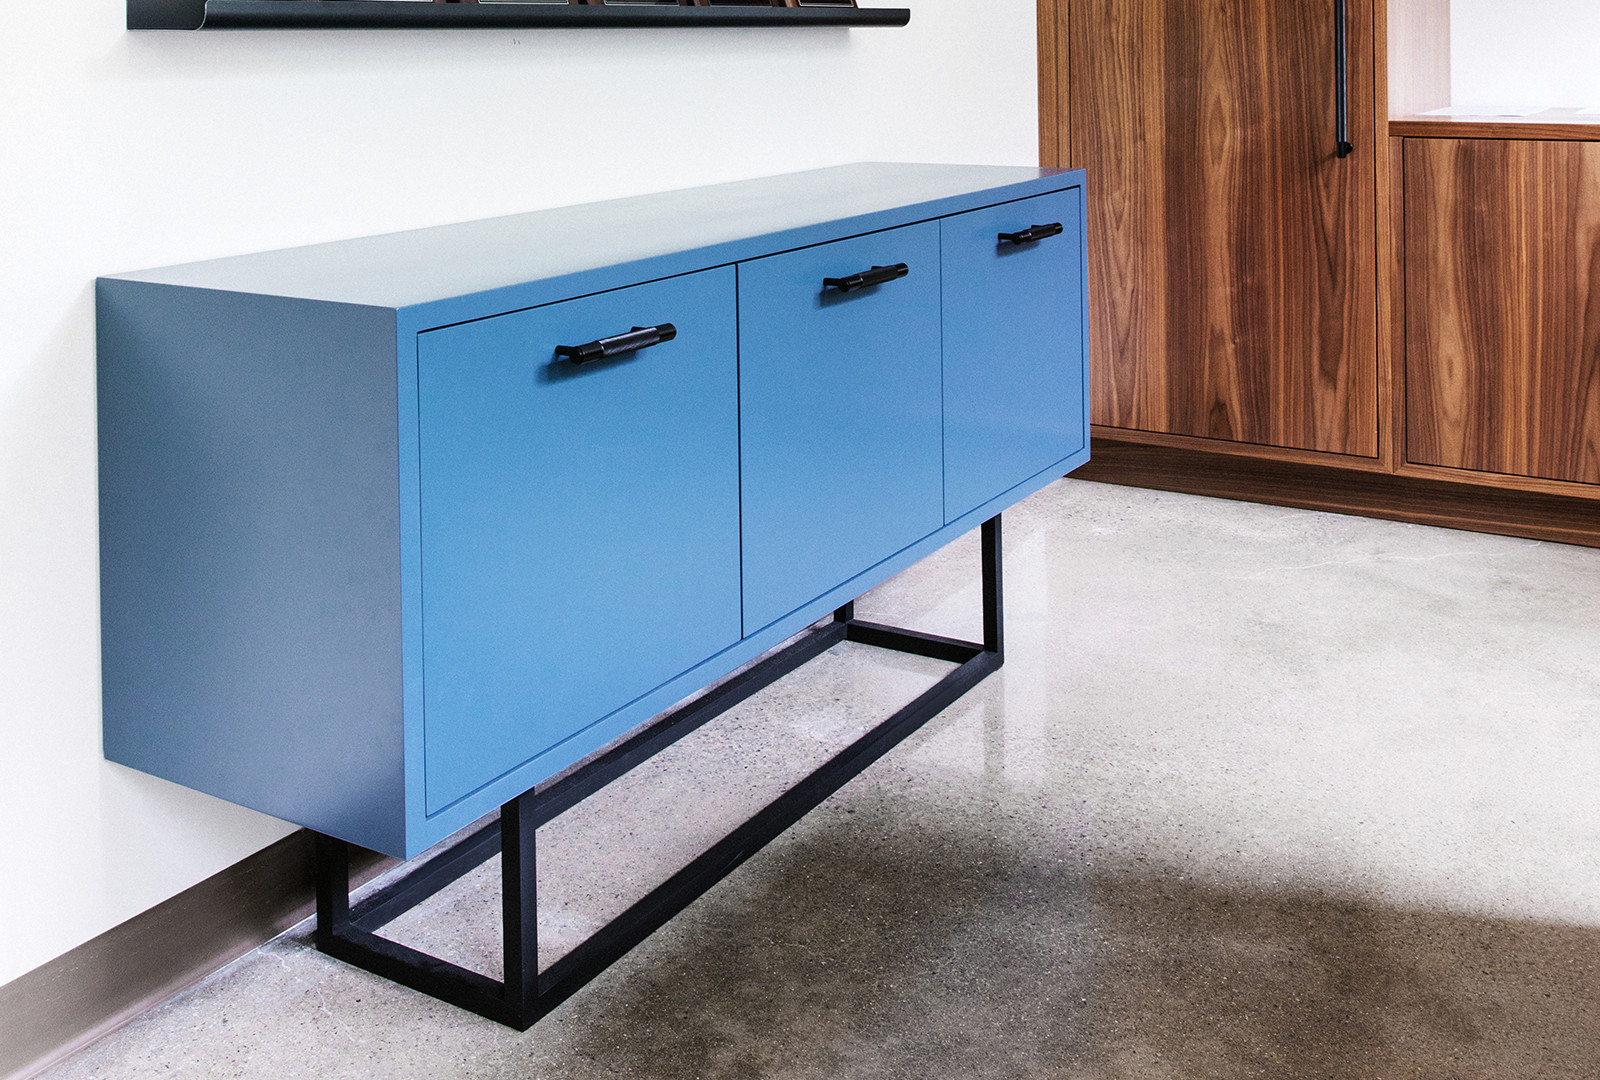 BLUE CREDENZA HERO SHOT_BLURRED TEXT.jpg